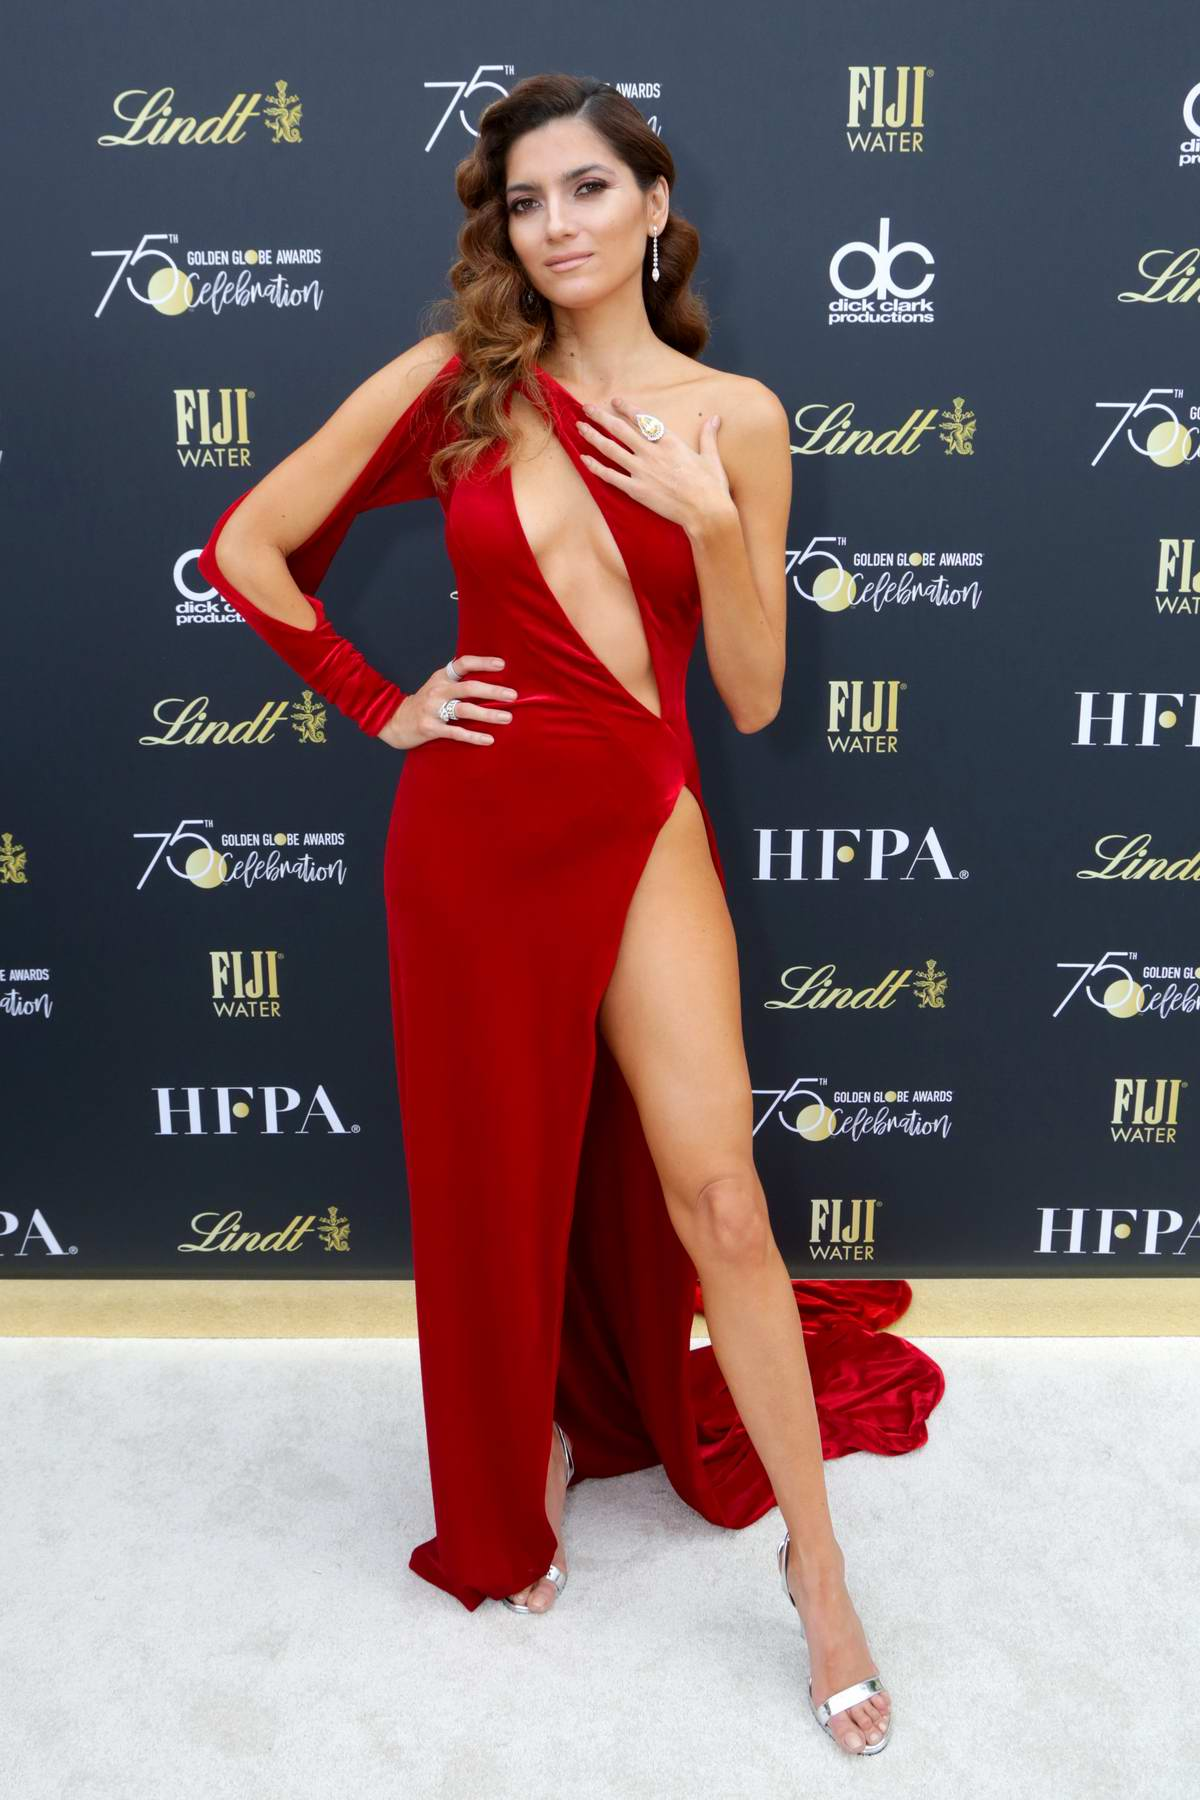 Blanca Blanco at the 75th Annual Golden Globe Awards in Beverly Hills, Los Angeles